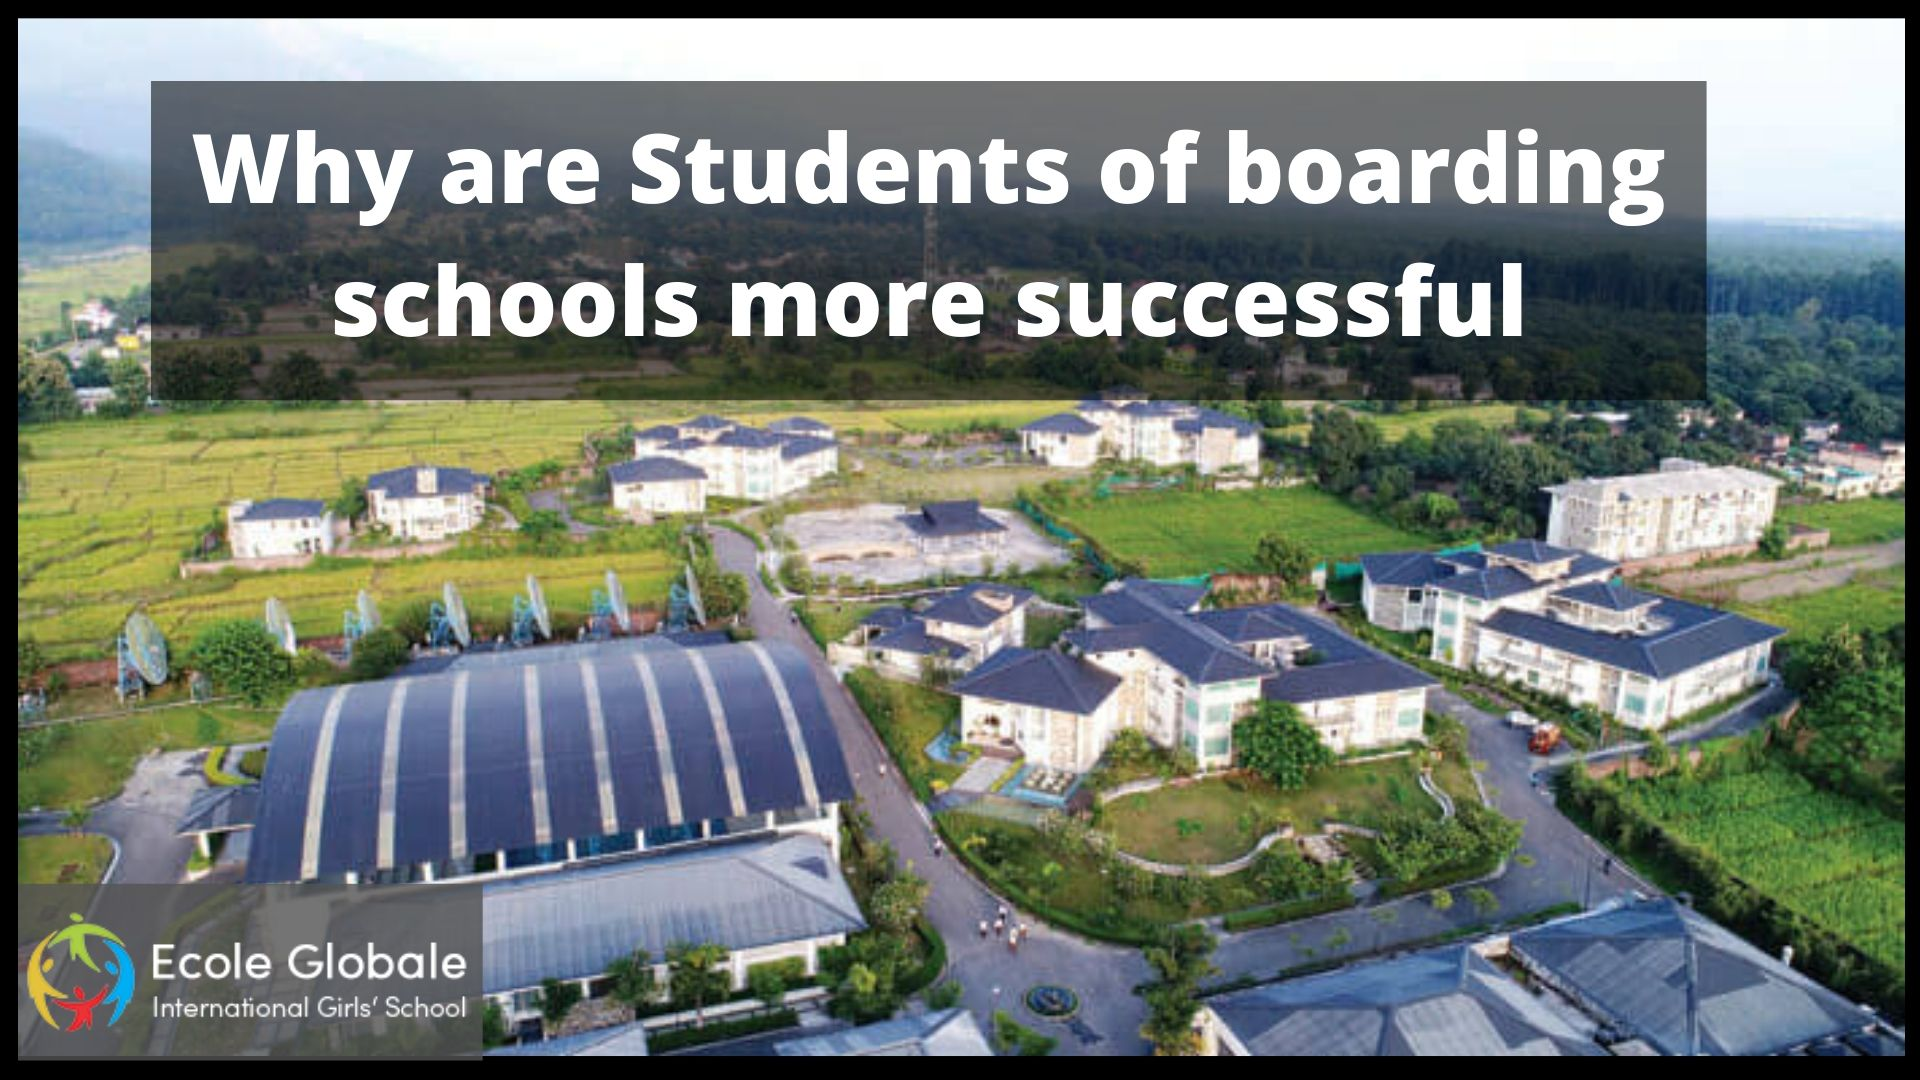 Why are Students of boarding schools more successful